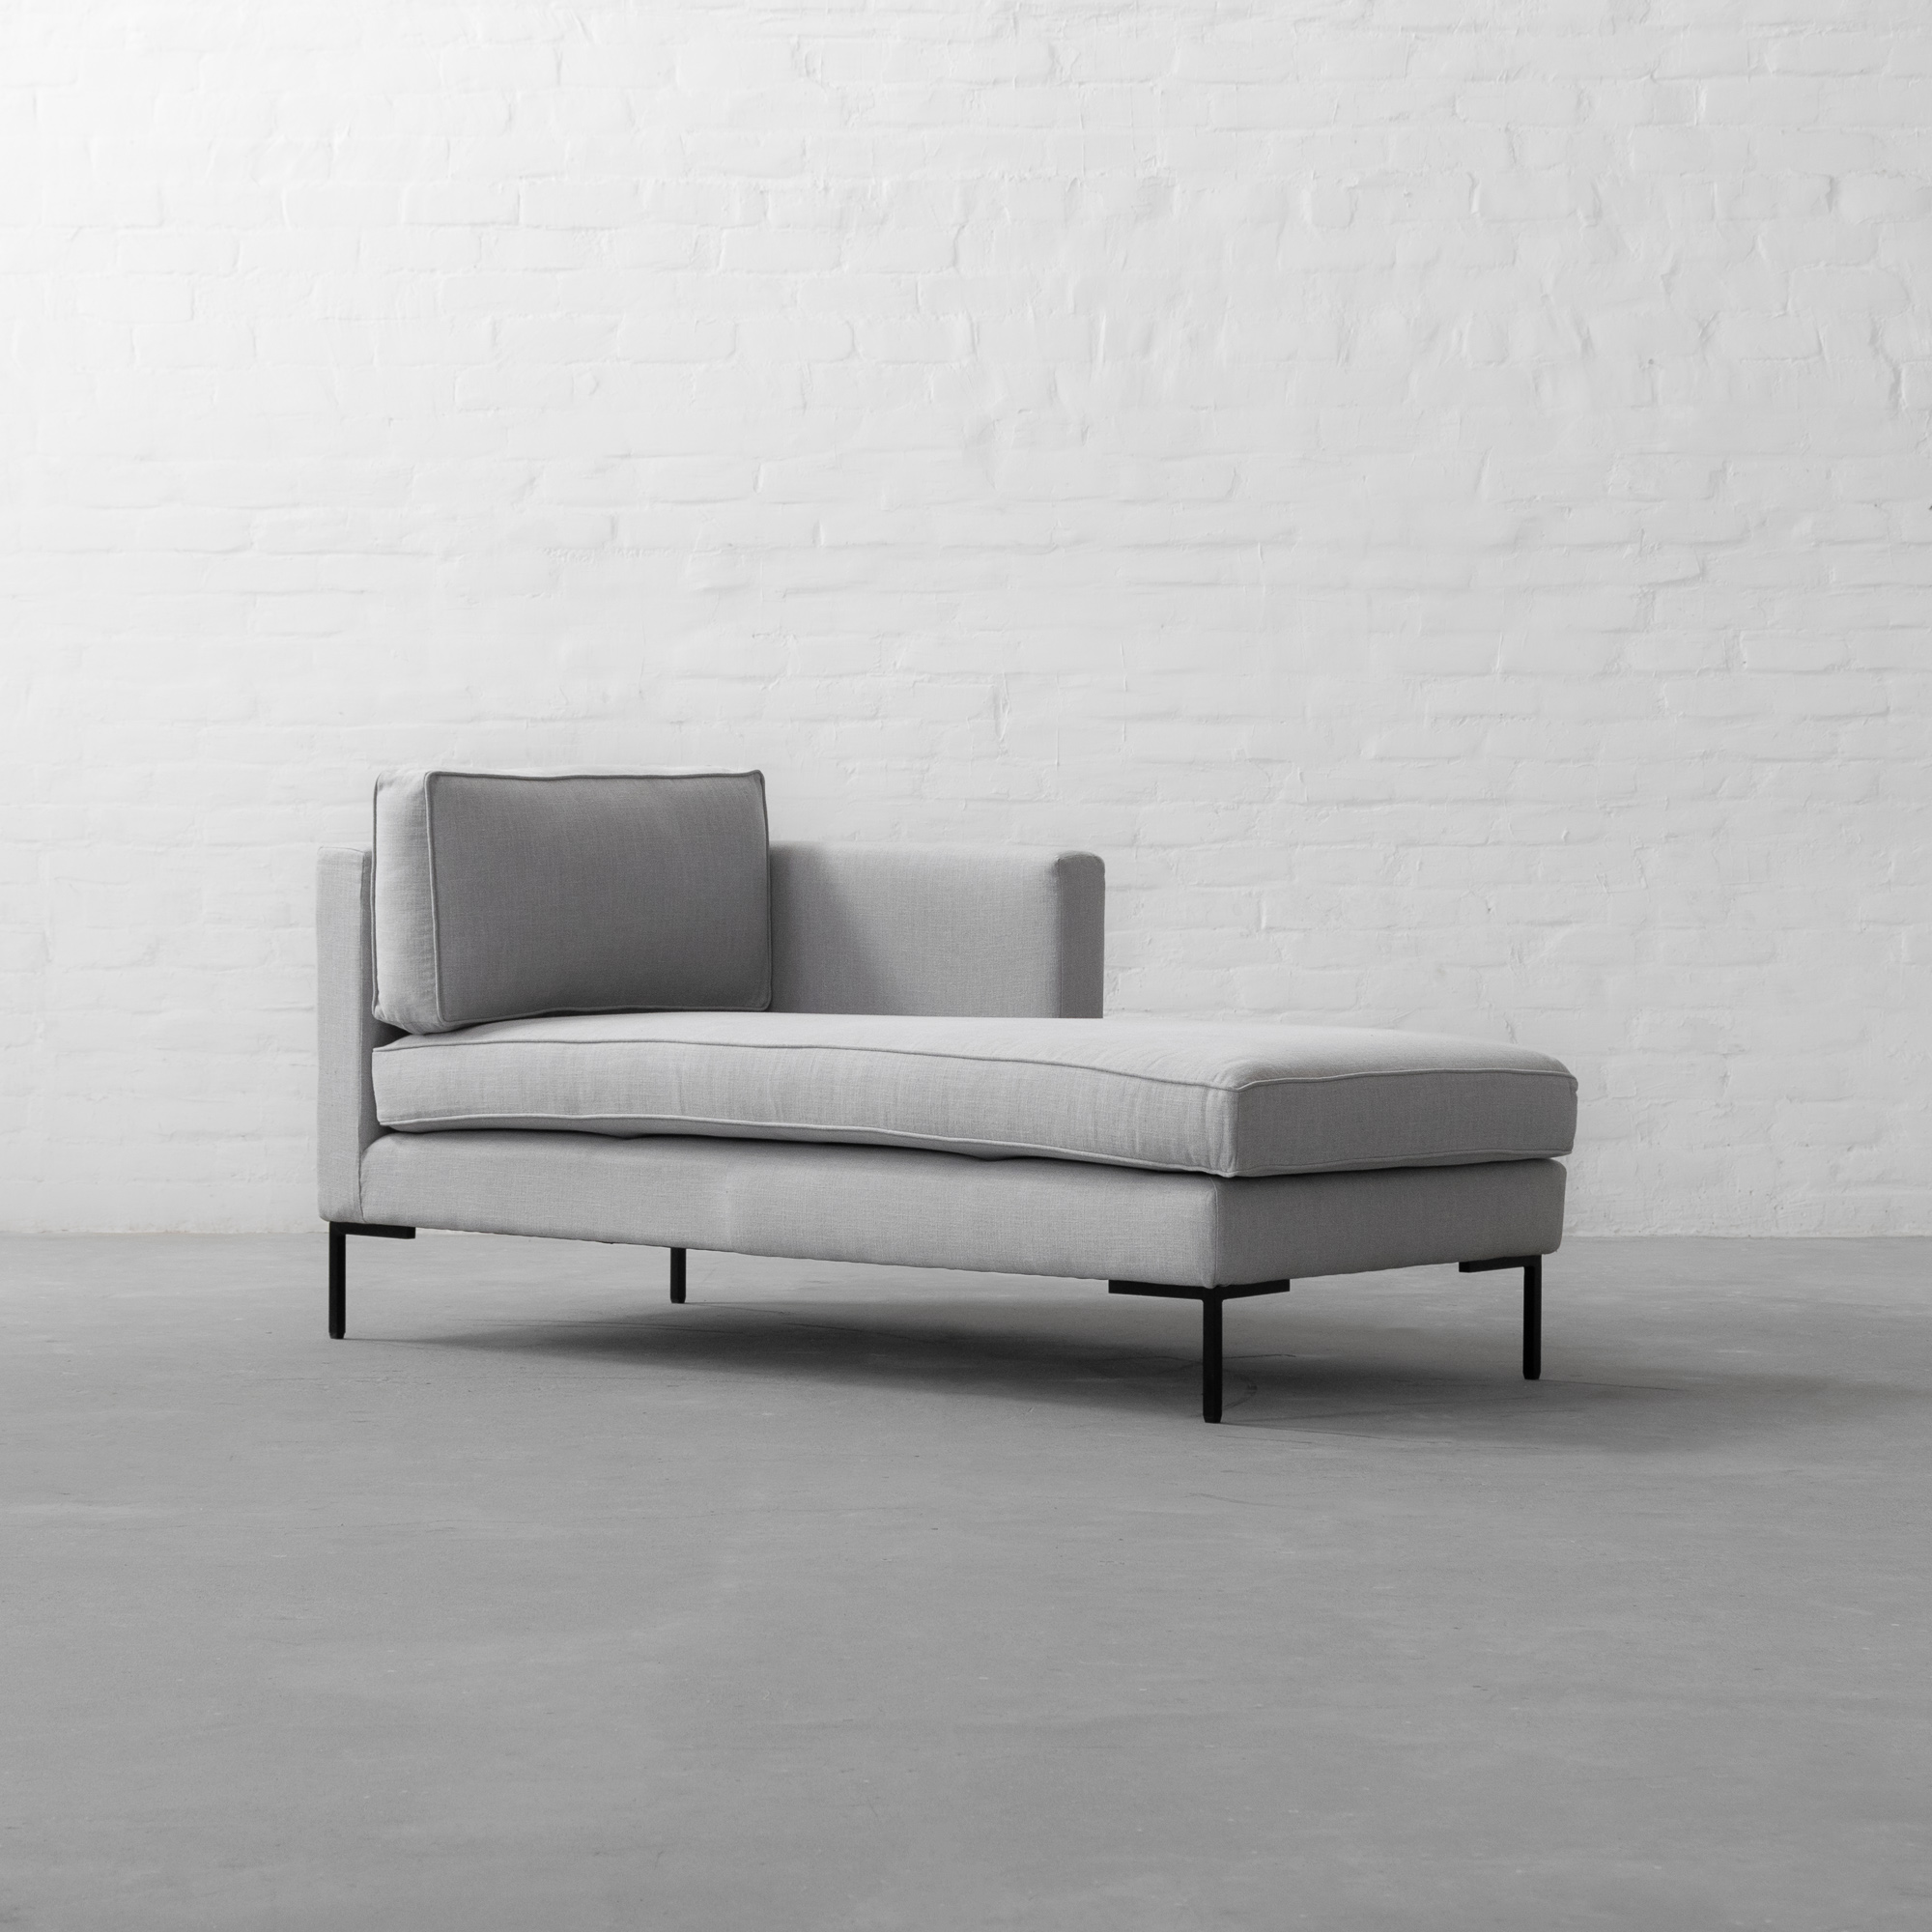 L.A Chaise Sectional